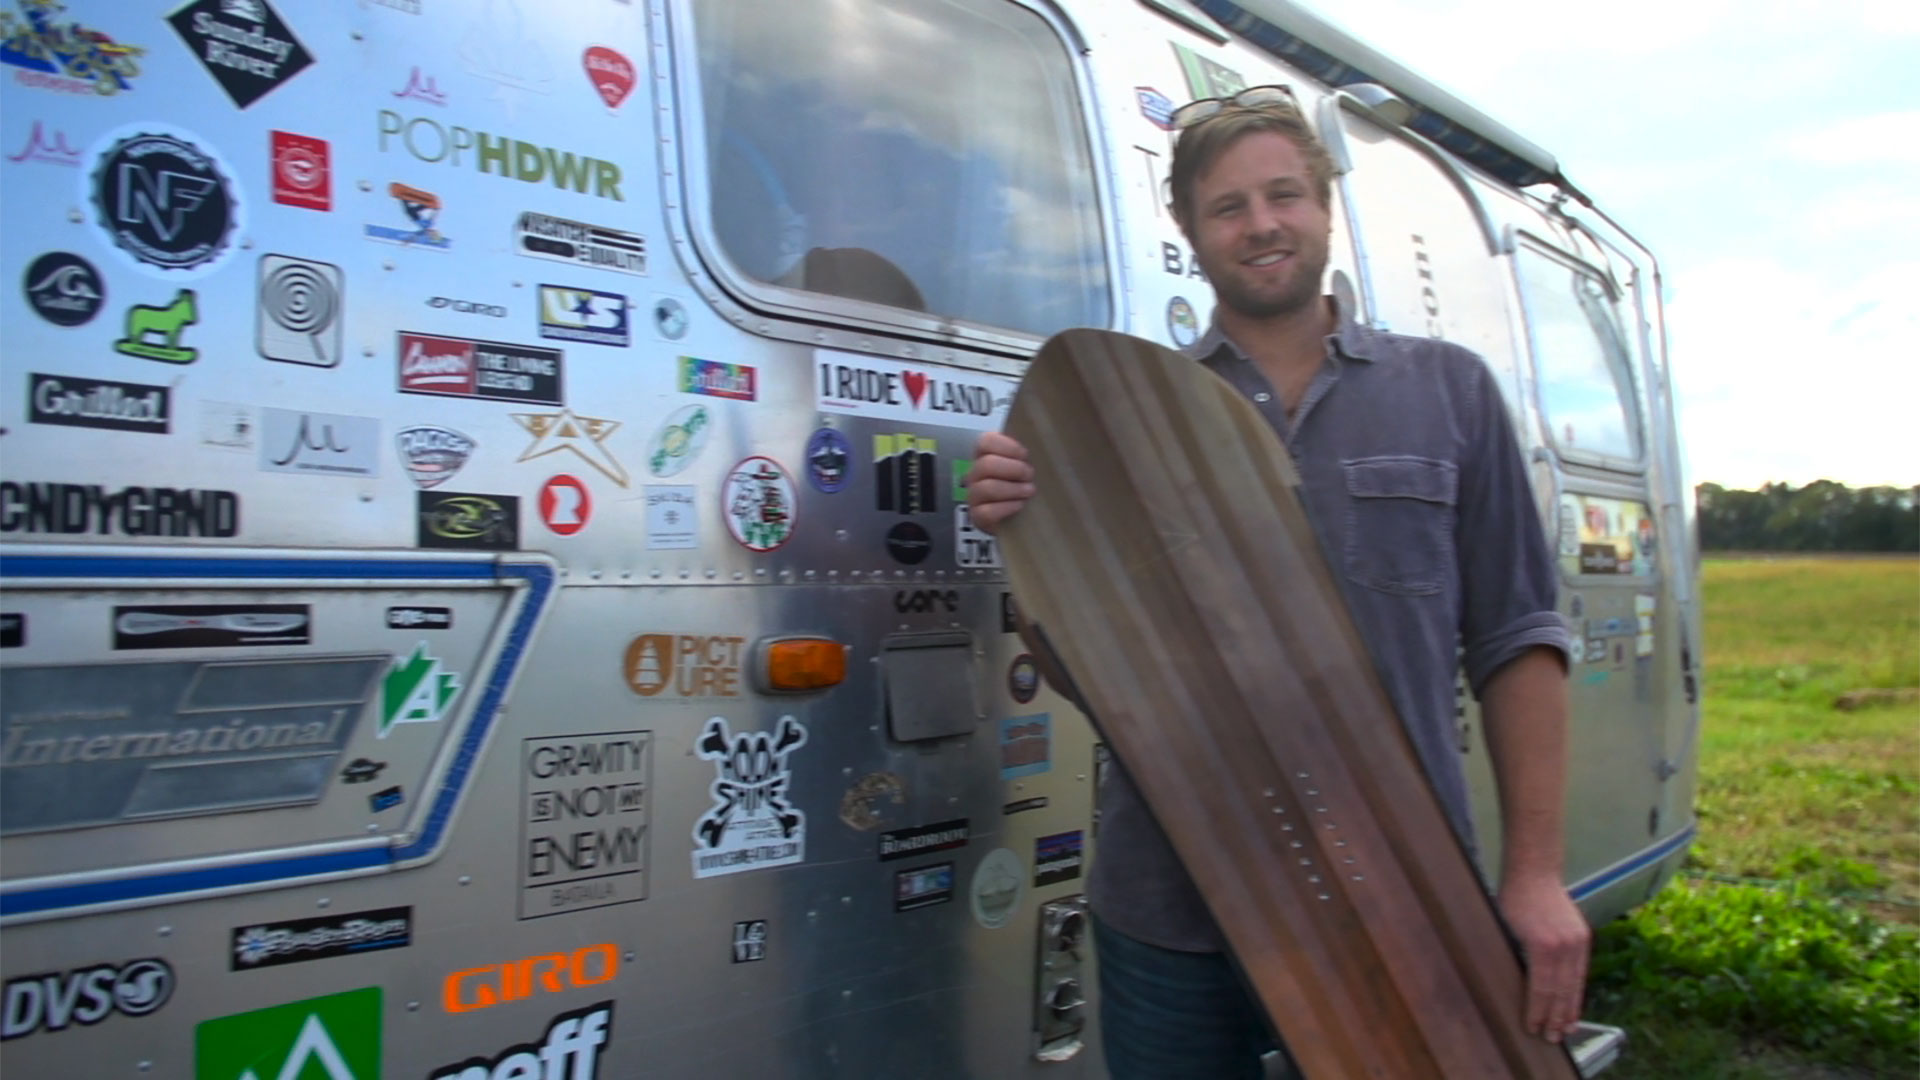 Man holding a snowboard standing in front of an airstream trailer covered in decals